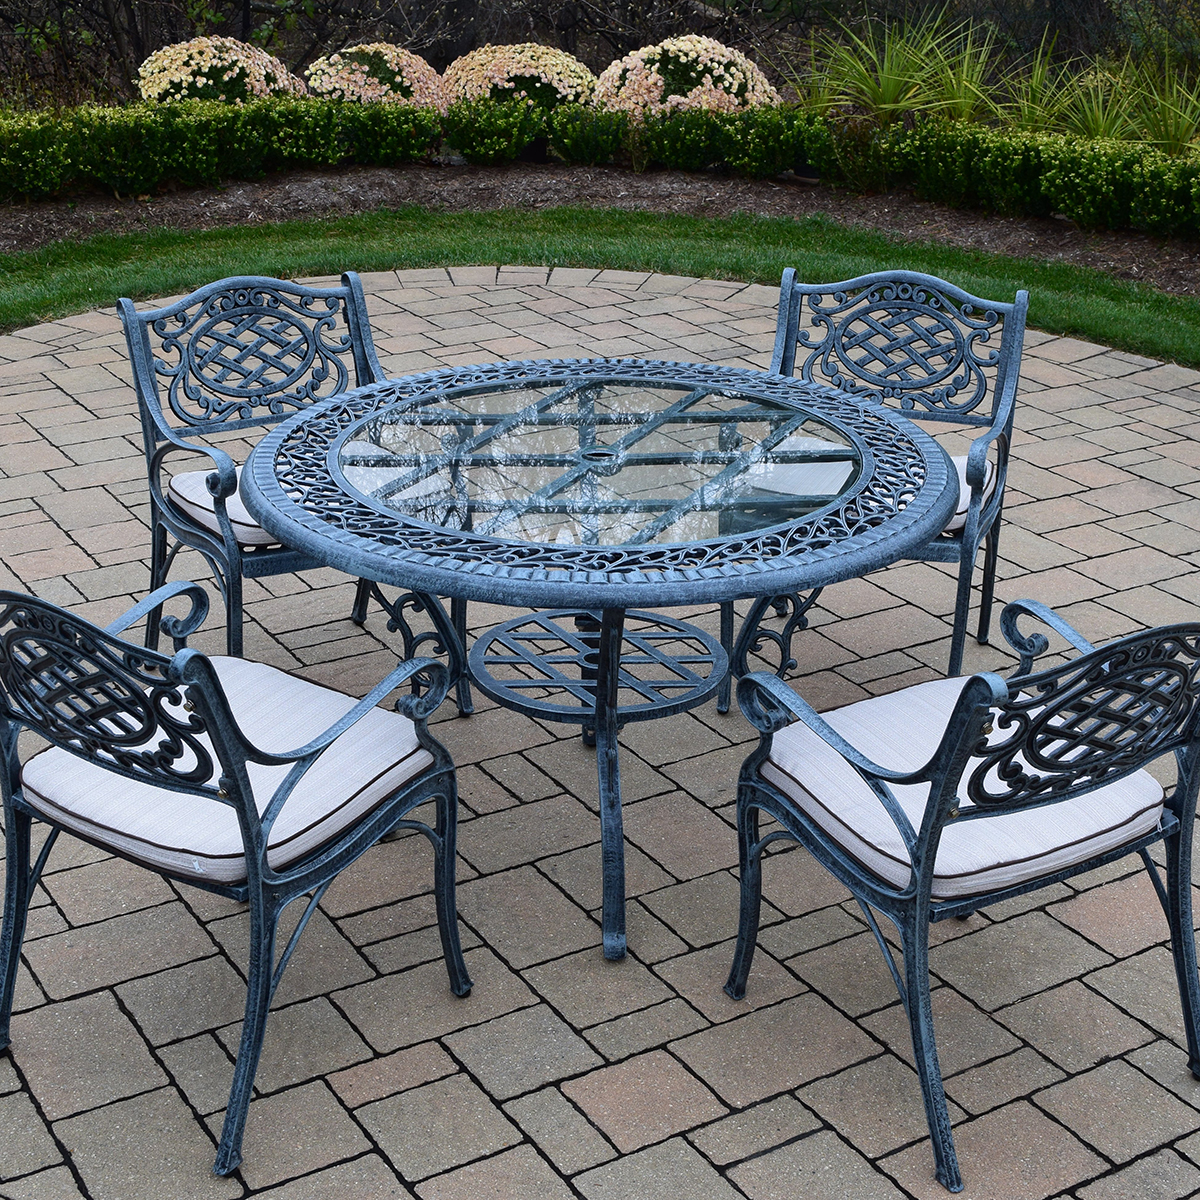 Patio Furniture Round Table Set: Oakland Living Mississippi Cast Aluminum 5 Piece Patio